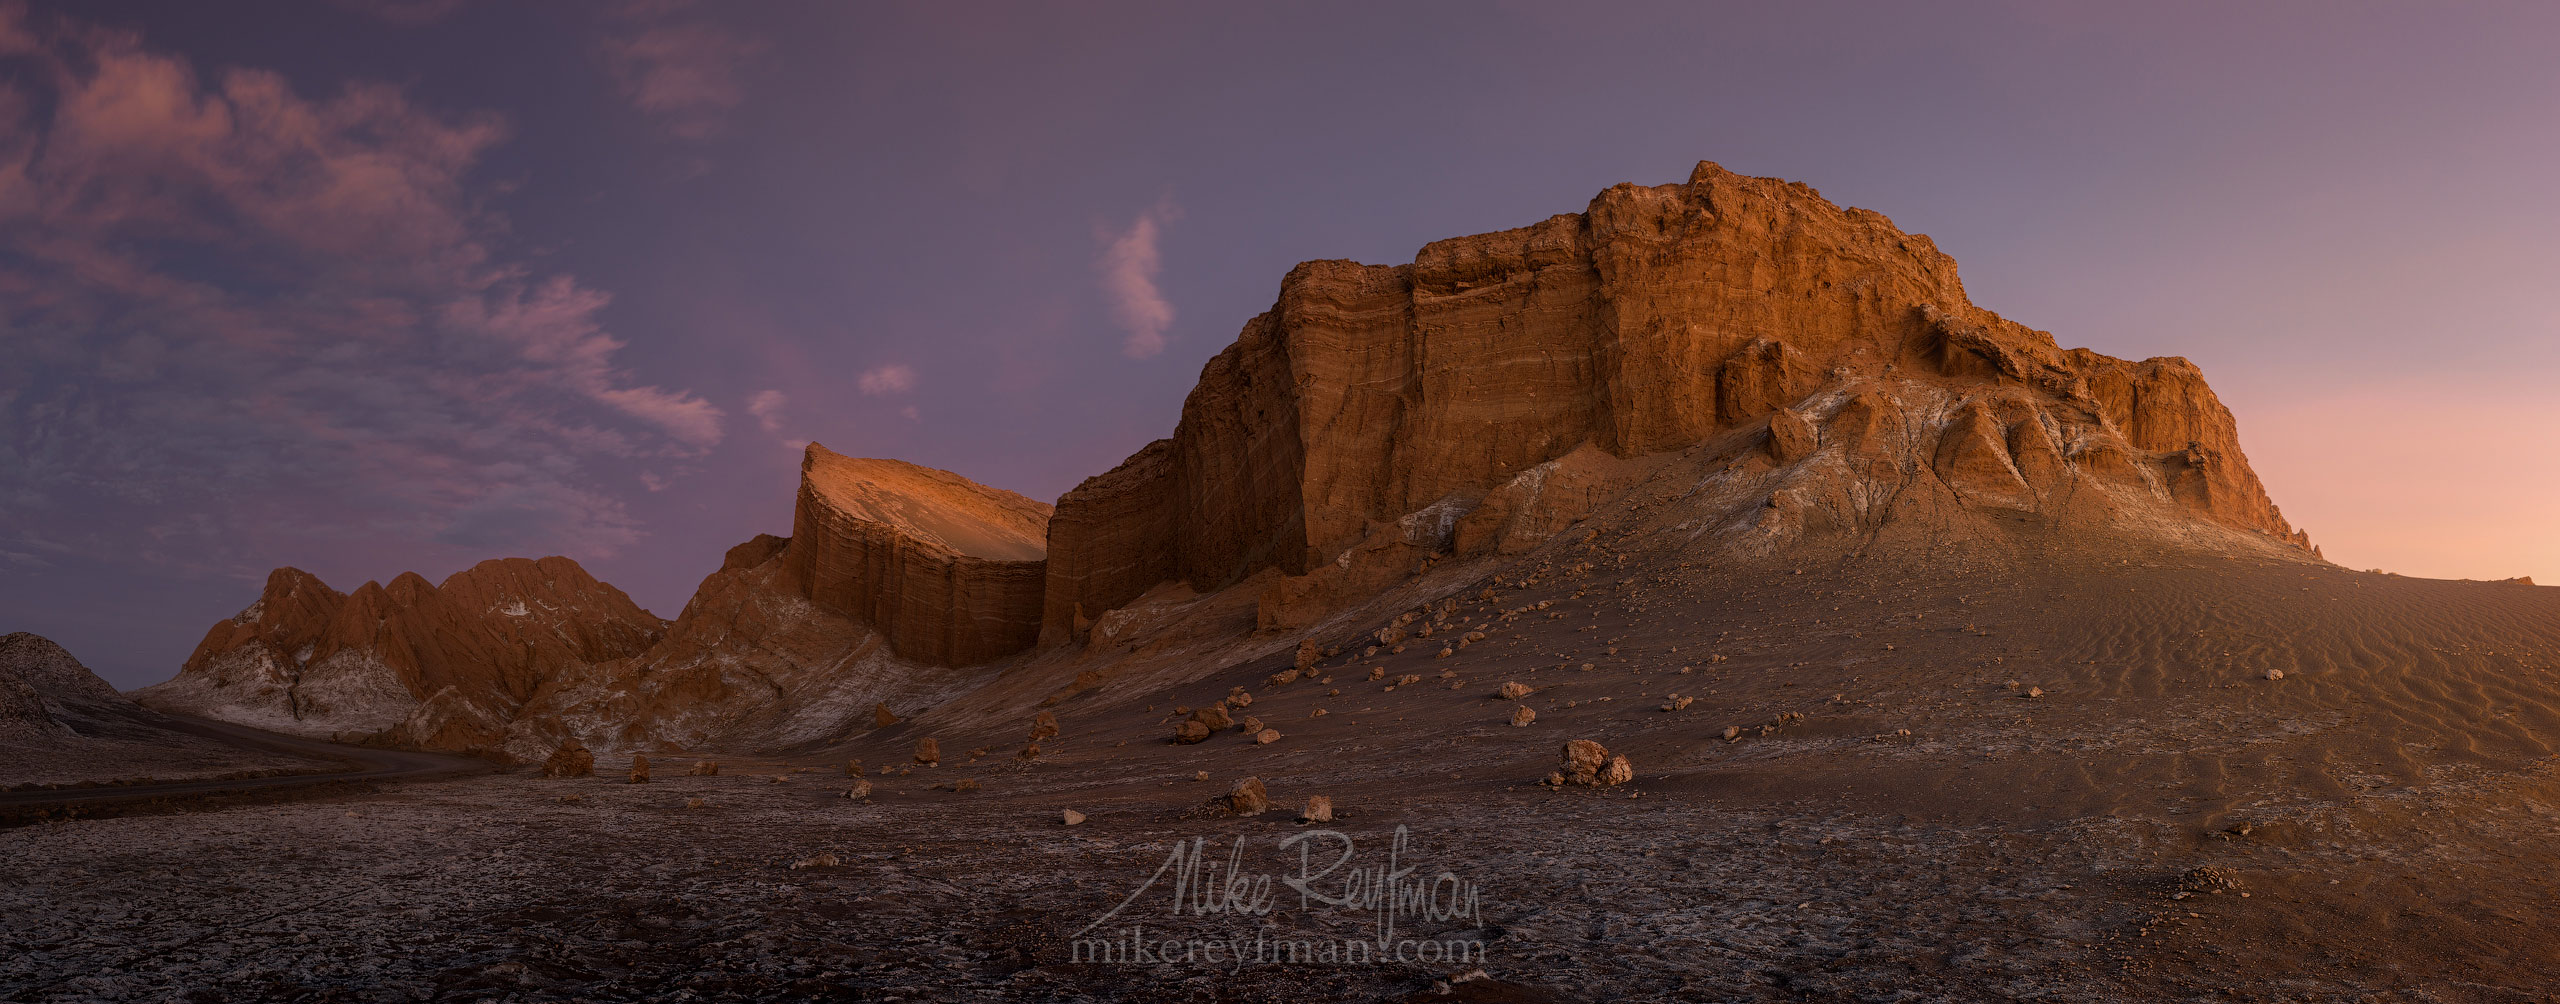 AA1-D1D8325_Pano_Warm_1x2.55 - Atacama and Altiplano. The Driest Desert and The High Plain - Mike Reyfman Photography